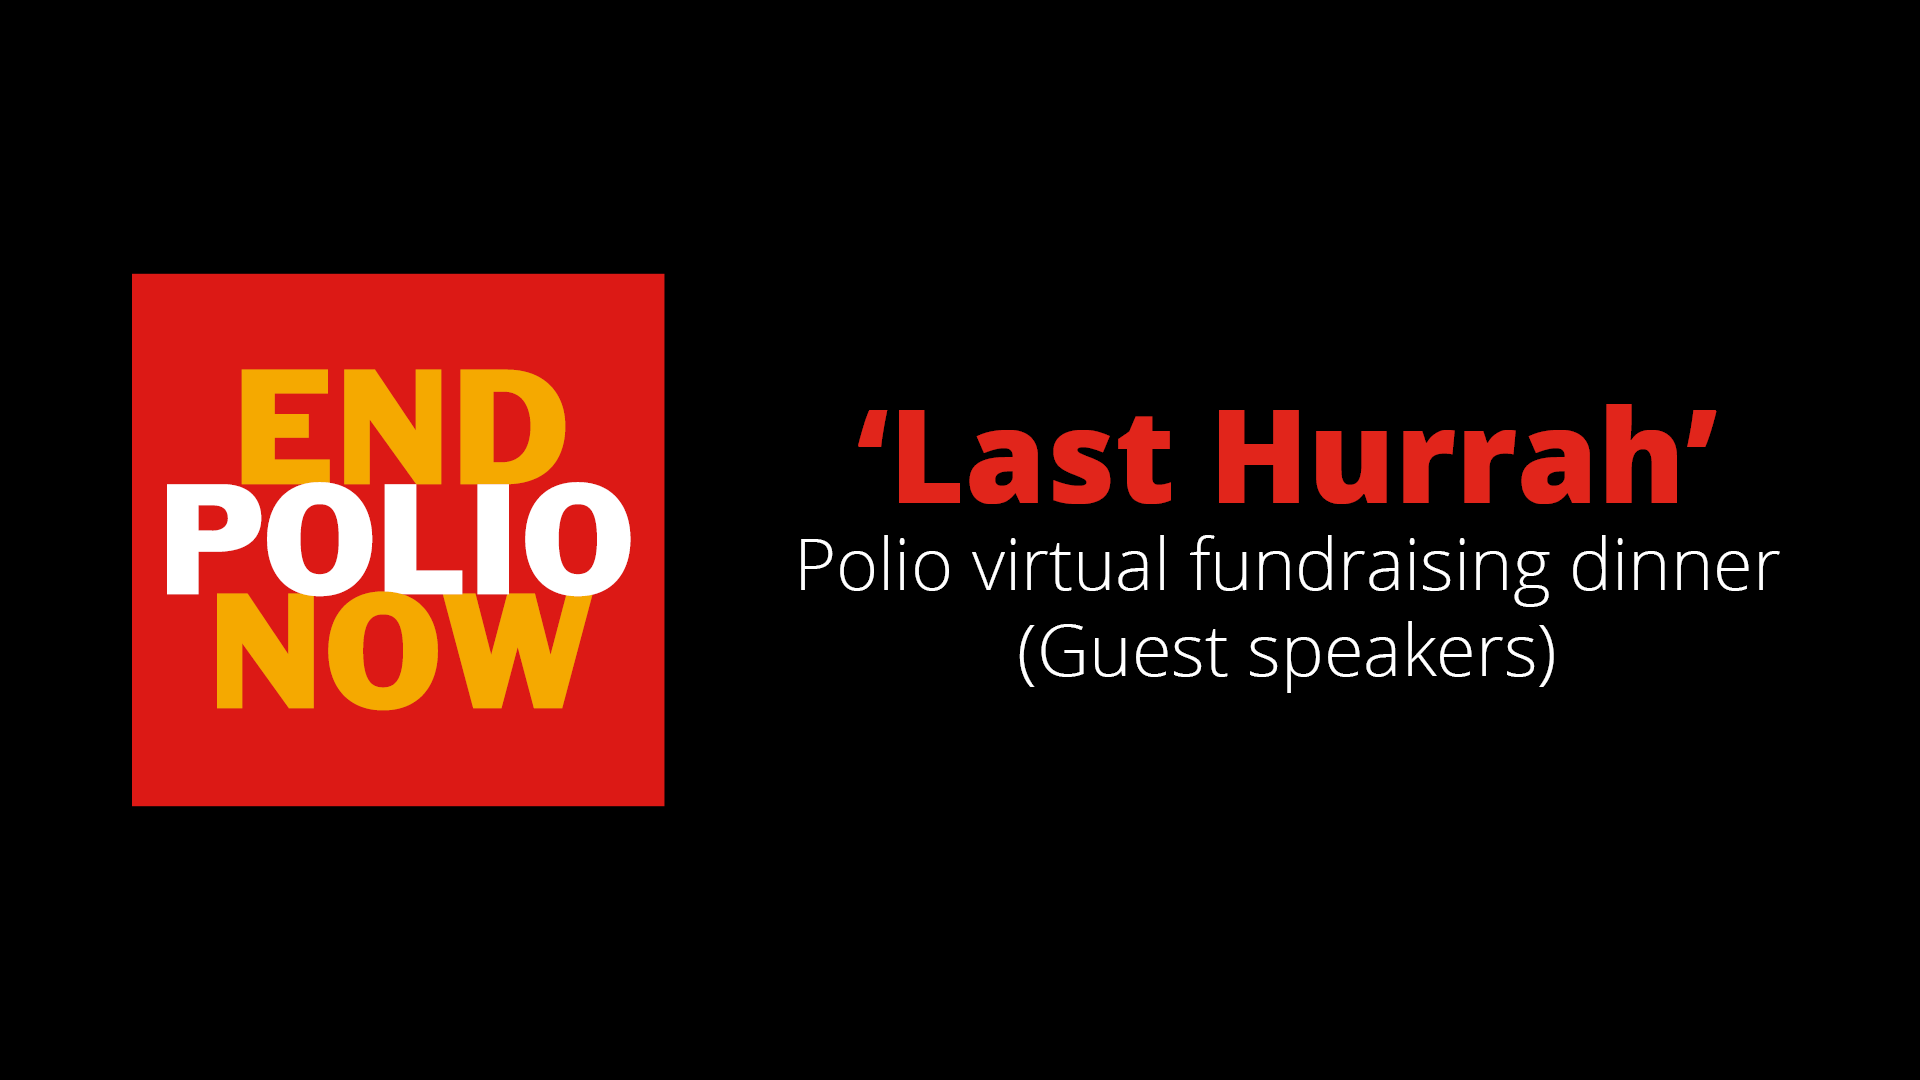 Part 01 (Guest speakers) of the 'Last Hurrah' Polio virtual fundraising dinner